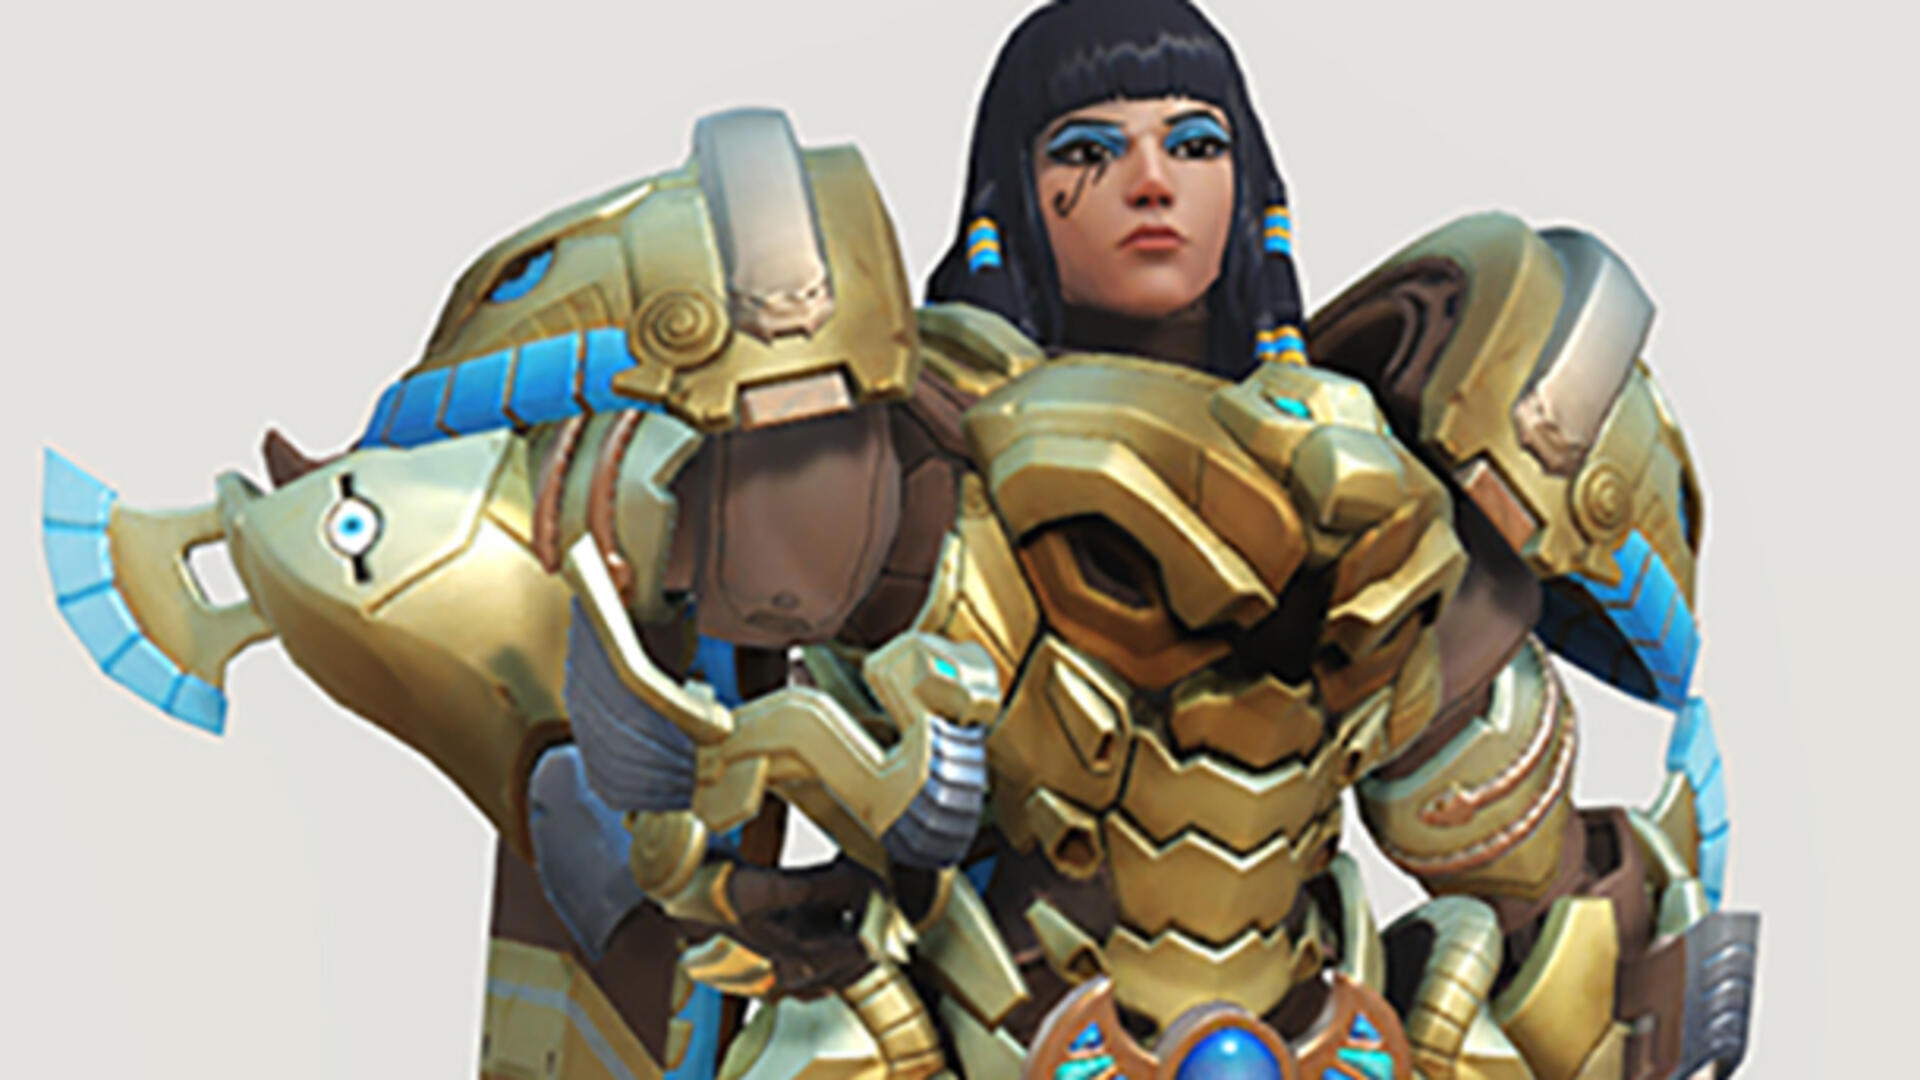 Overwatch Casuals (Like Me) Will Be Fine as Long as Blizzard Keeps Pushing Cosmetics